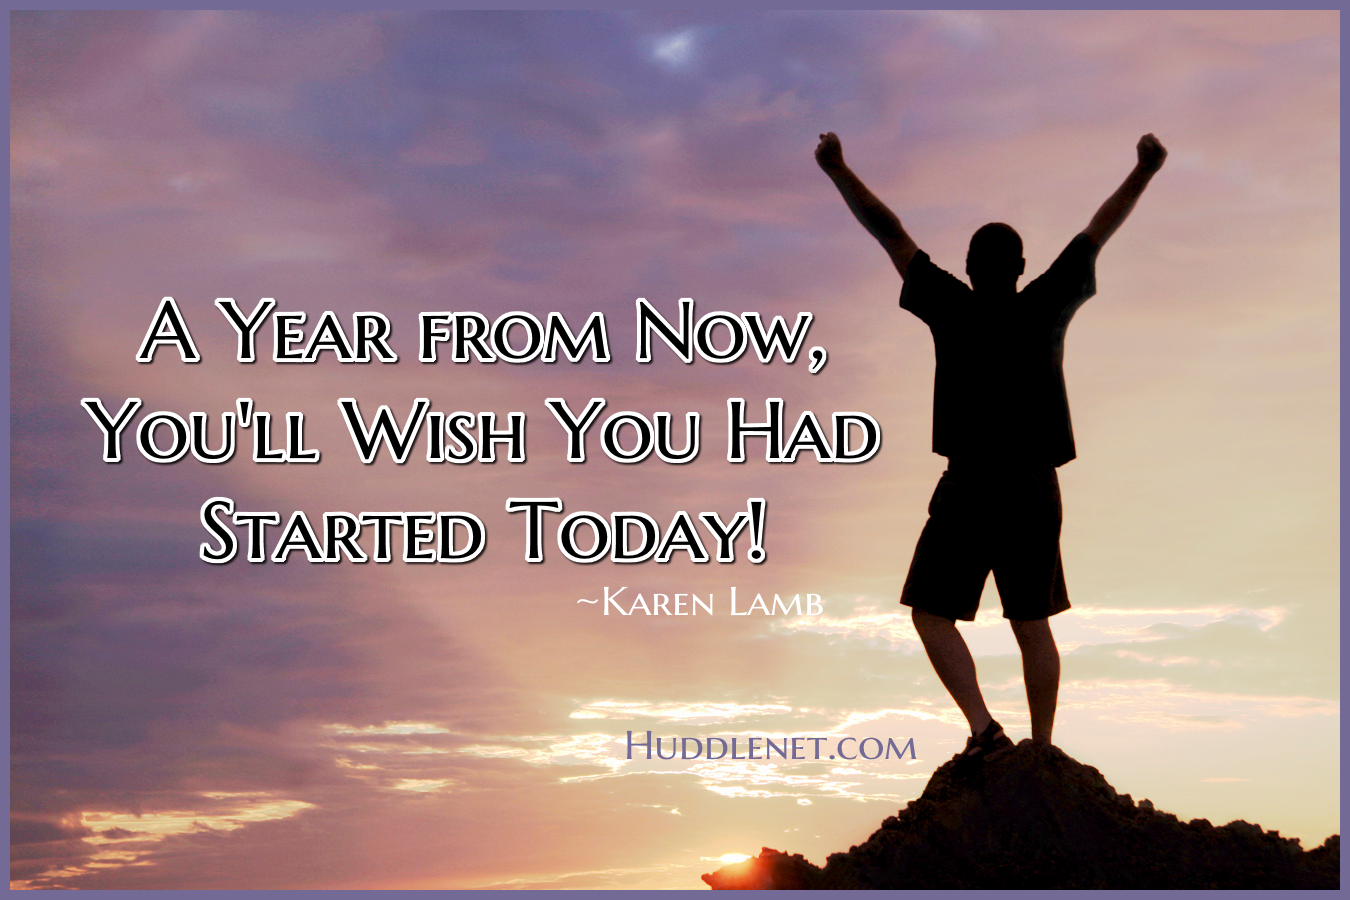 A Year from Now, You'll Wish You Had Started Today - Karen Lamb - Huddlenet.com